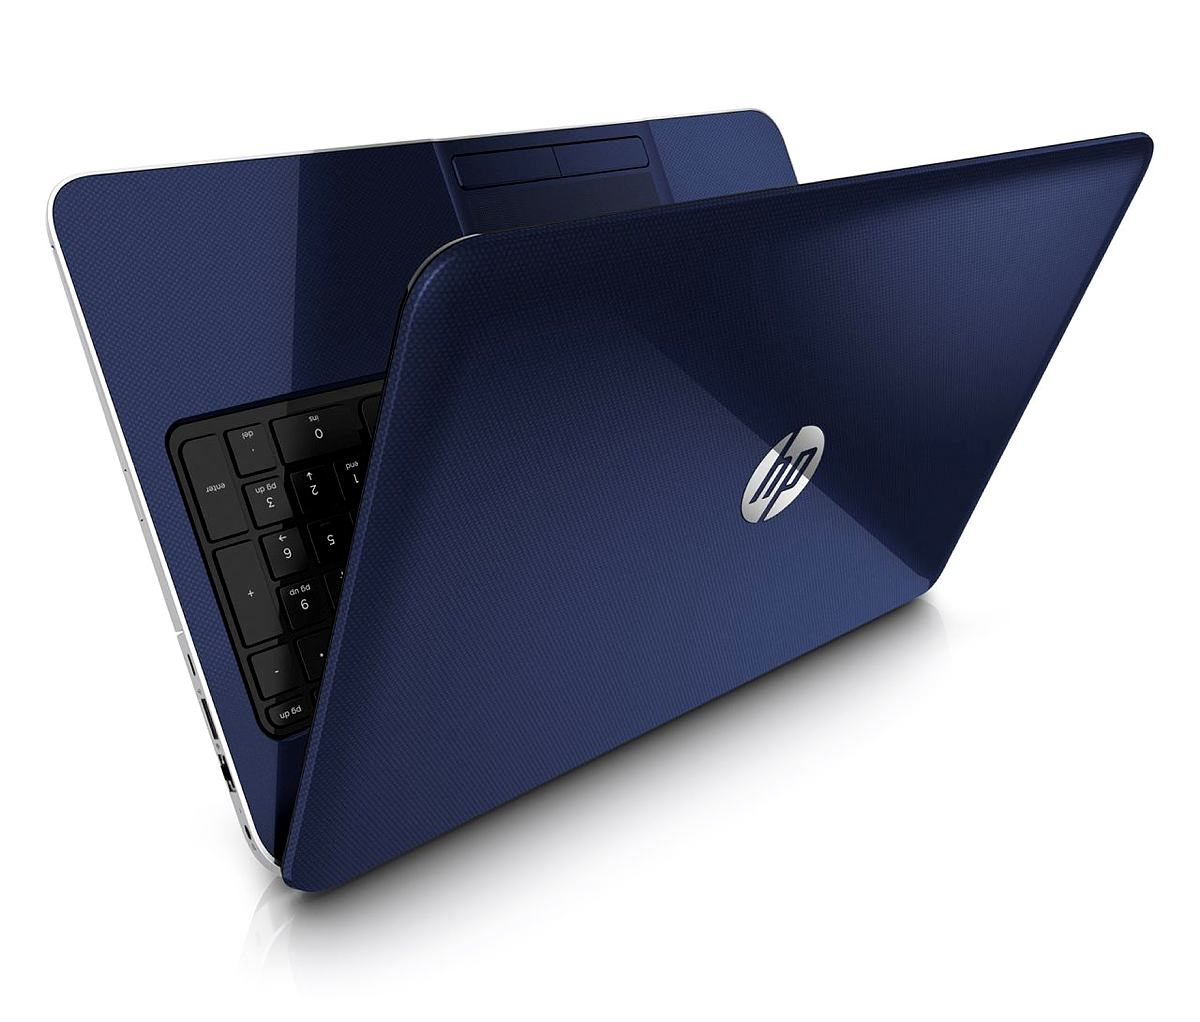 HP Pavilion 15 - Back